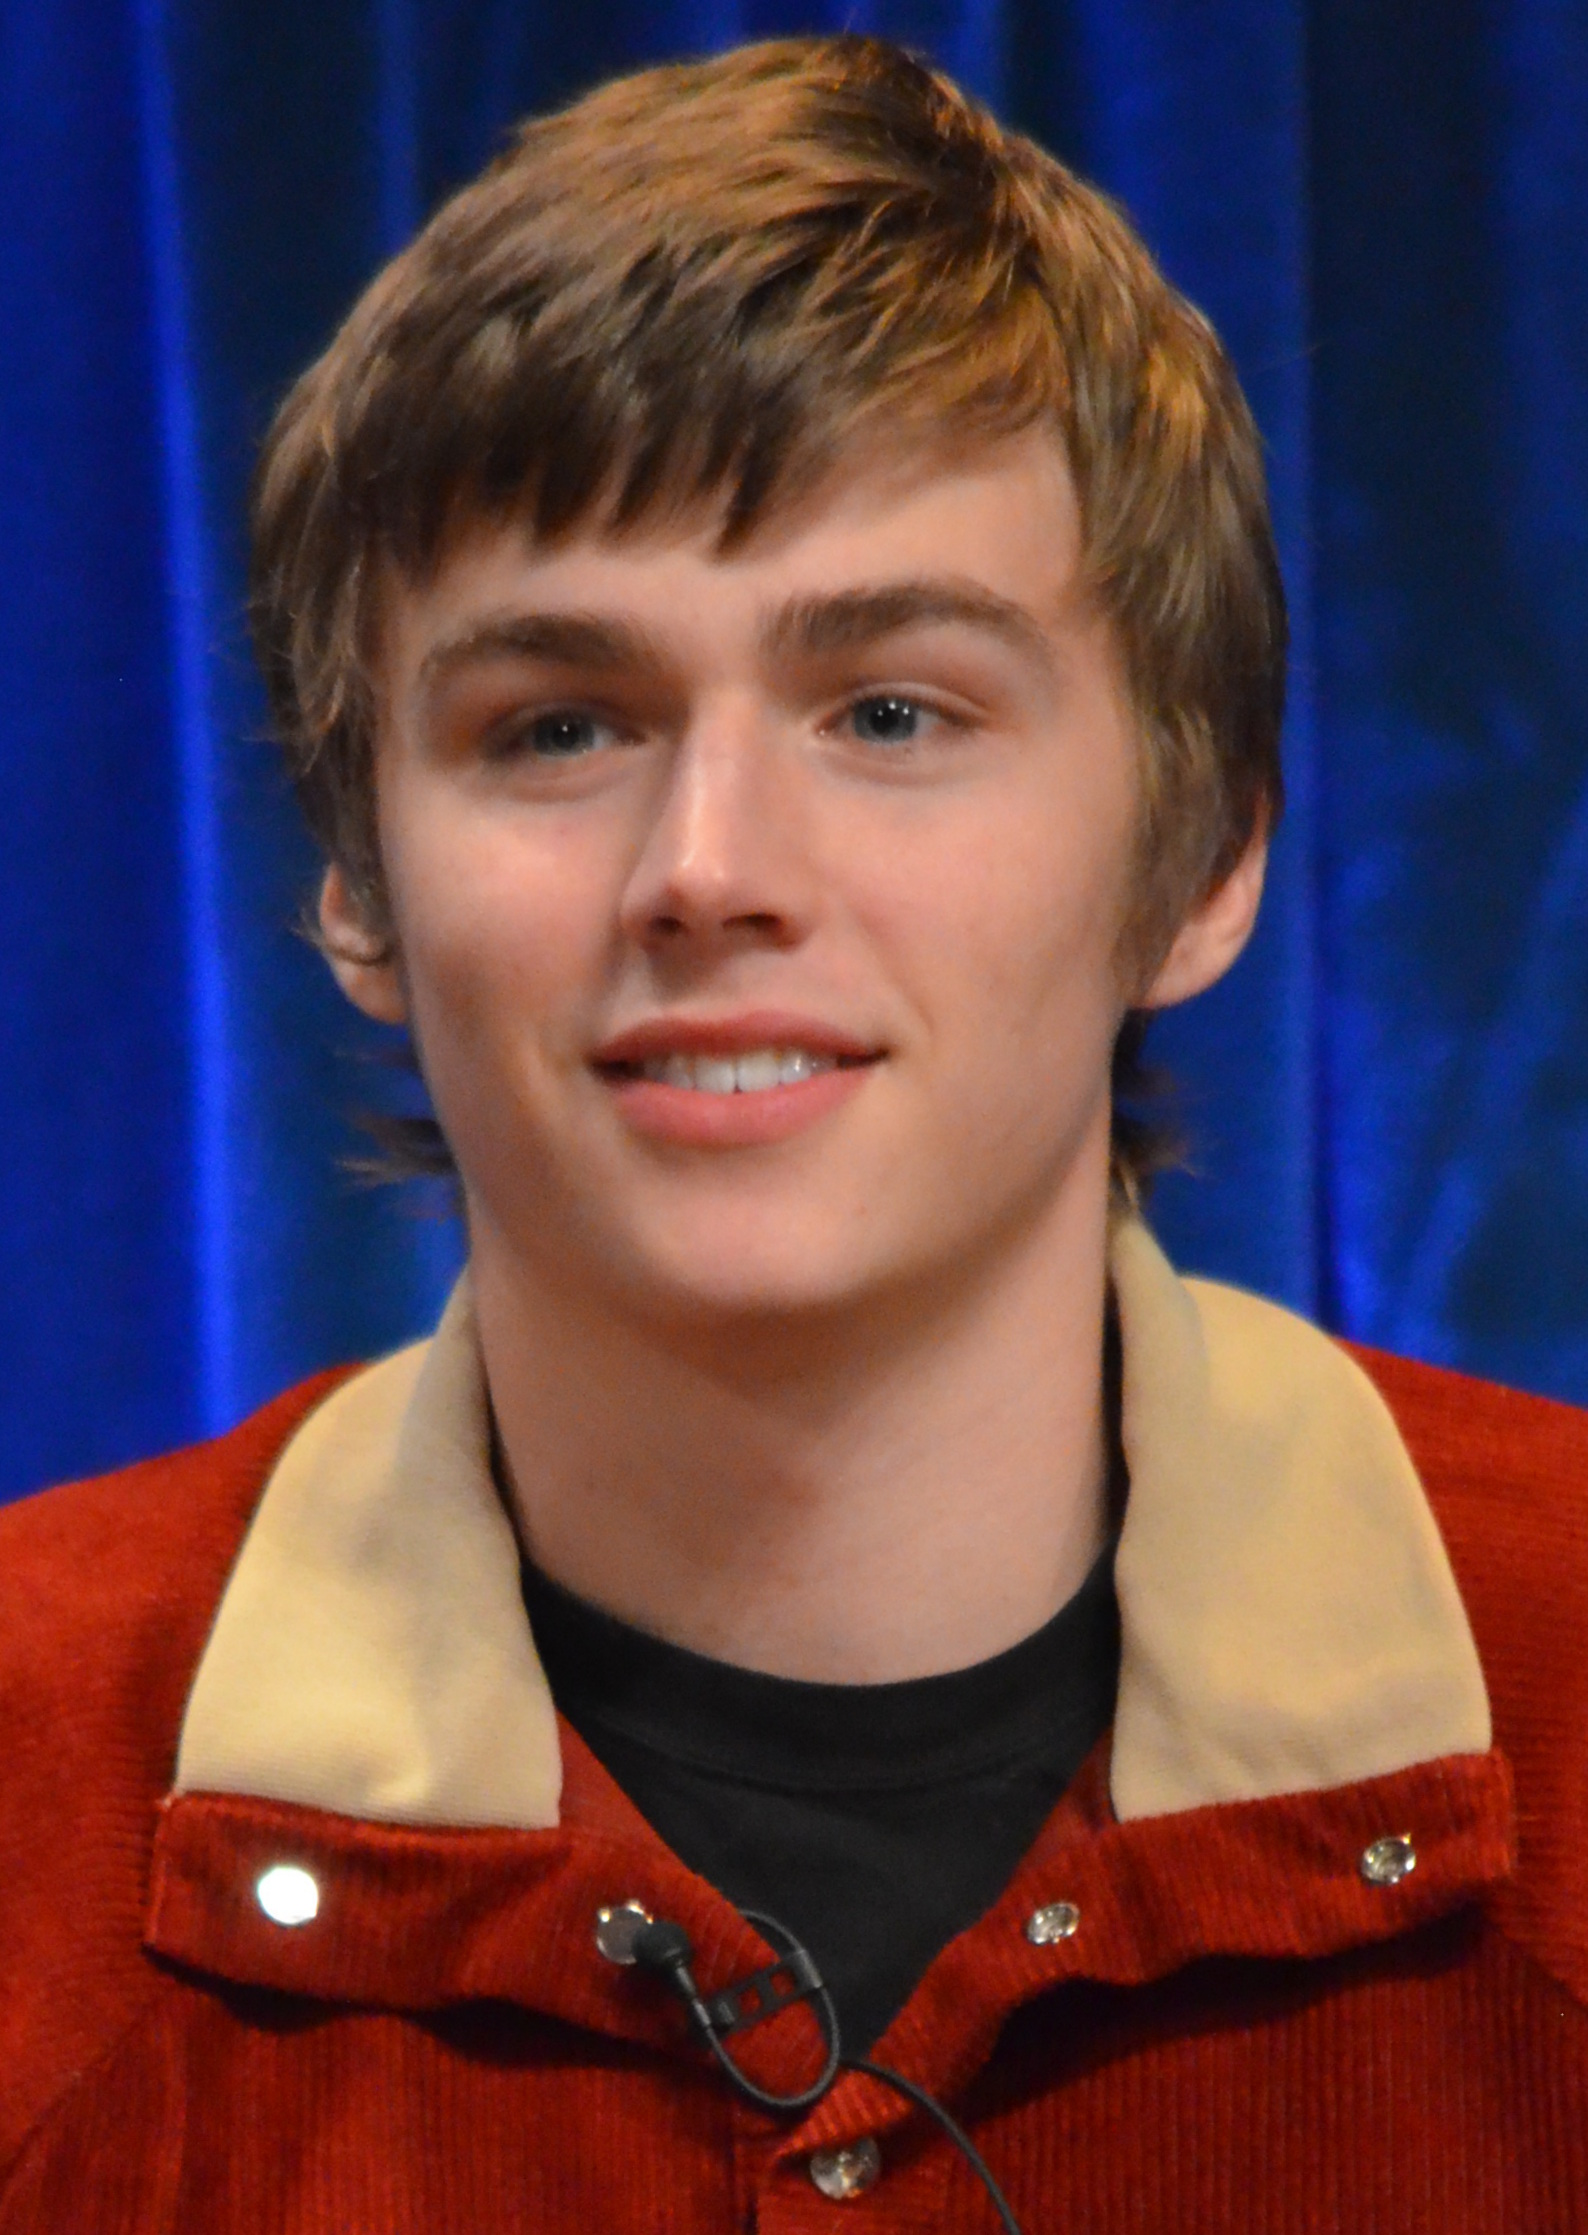 The 26-year old son of father (?) and mother(?) Miles Heizer in 2020 photo. Miles Heizer earned a million dollar salary - leaving the net worth at million in 2020